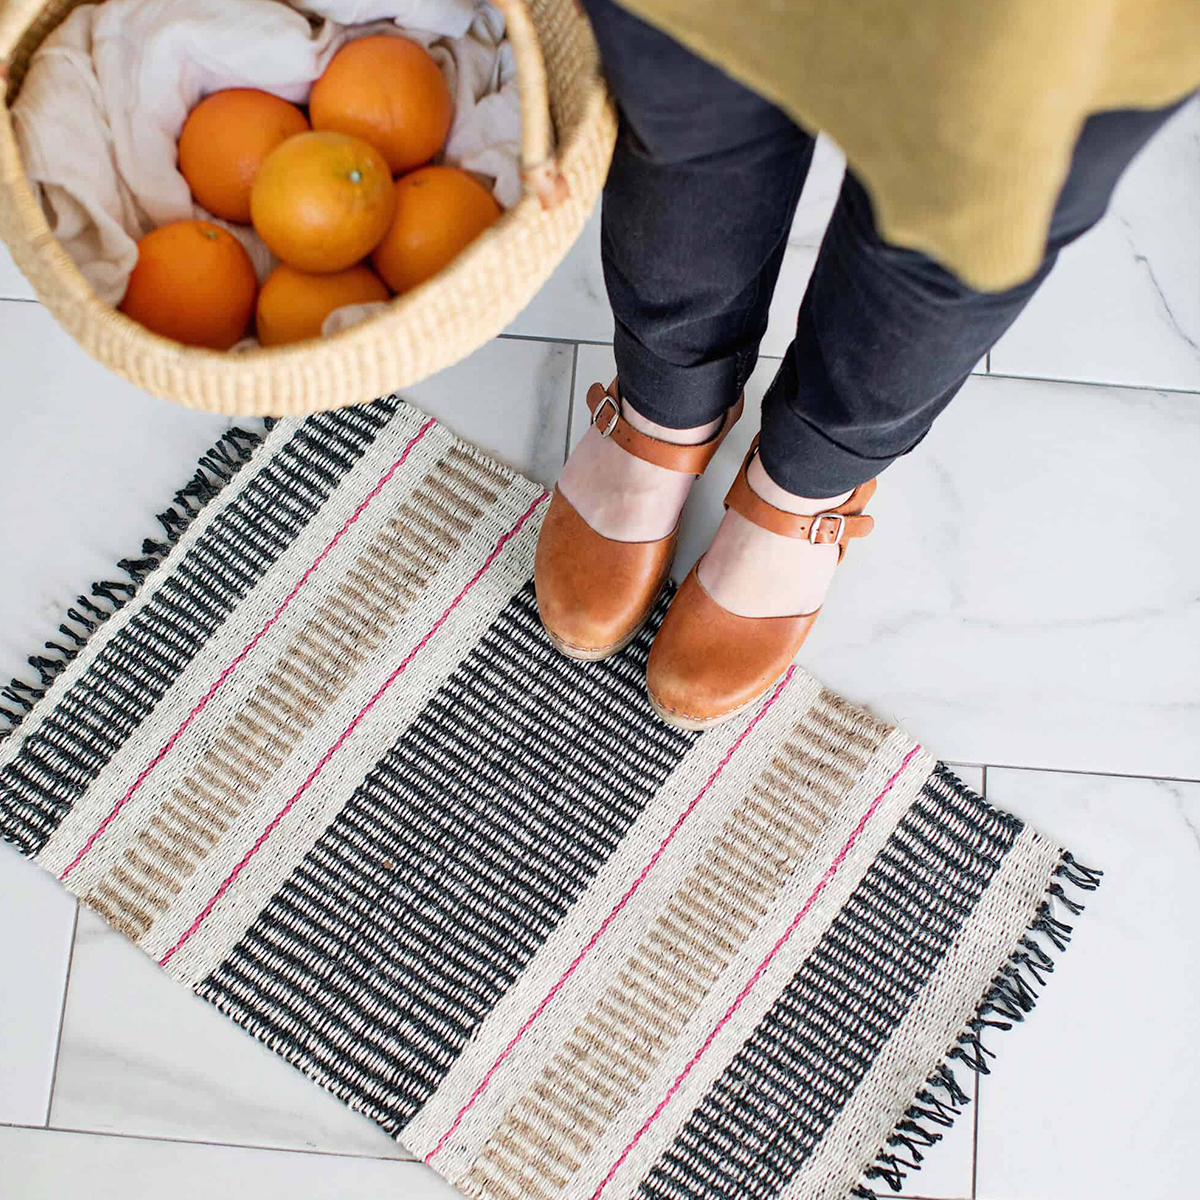 + A handmade jute mat - I said it before and I'll say it again, you can never go wrong with handmade gifts; especially when said gifts are both functional and beautiful. Give this DIY mat to the septuagenarian in your life and they'll be bragging to all their friends how talented you are and how proud you make them.(Image | A Beautiful Mess)